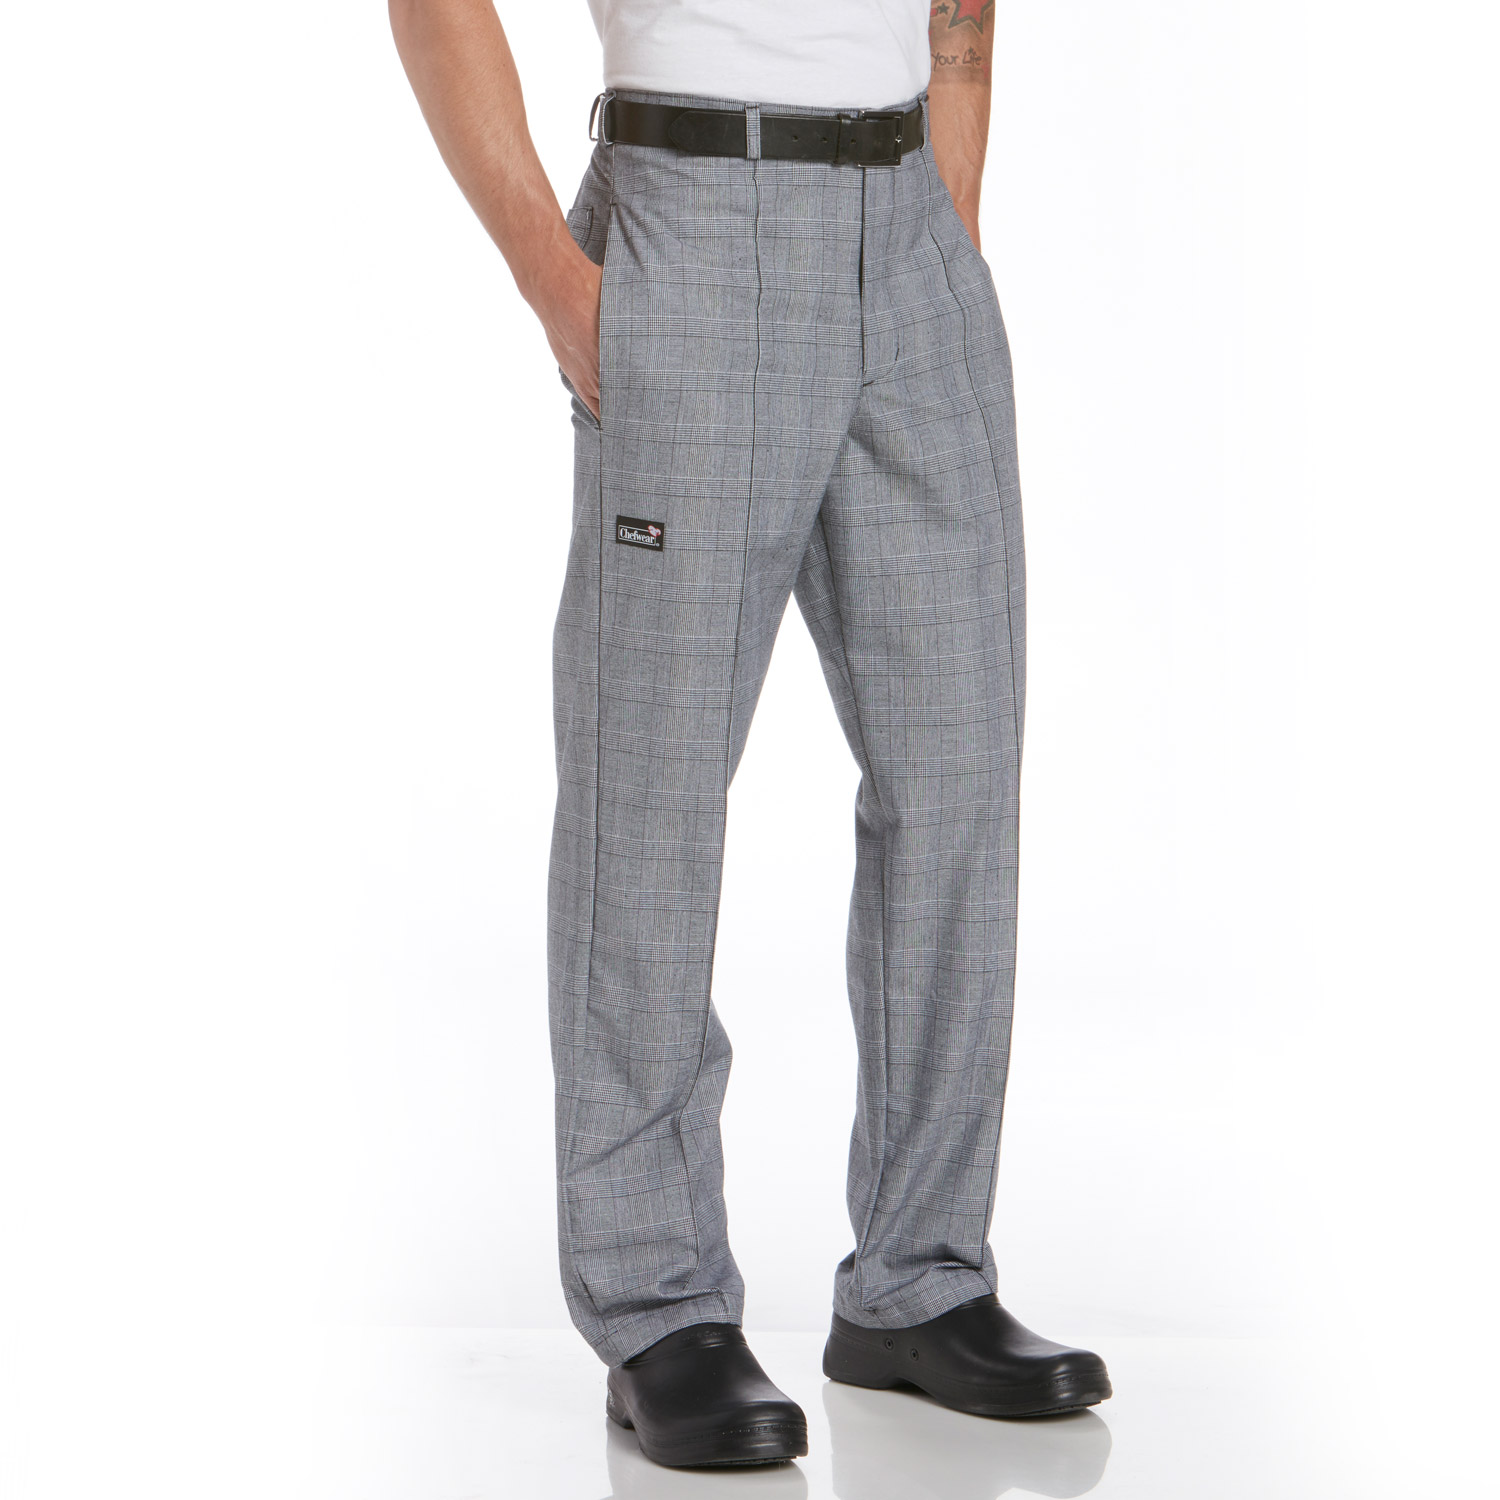 Tailored Cotton Chef Pants 3640 Chefwear